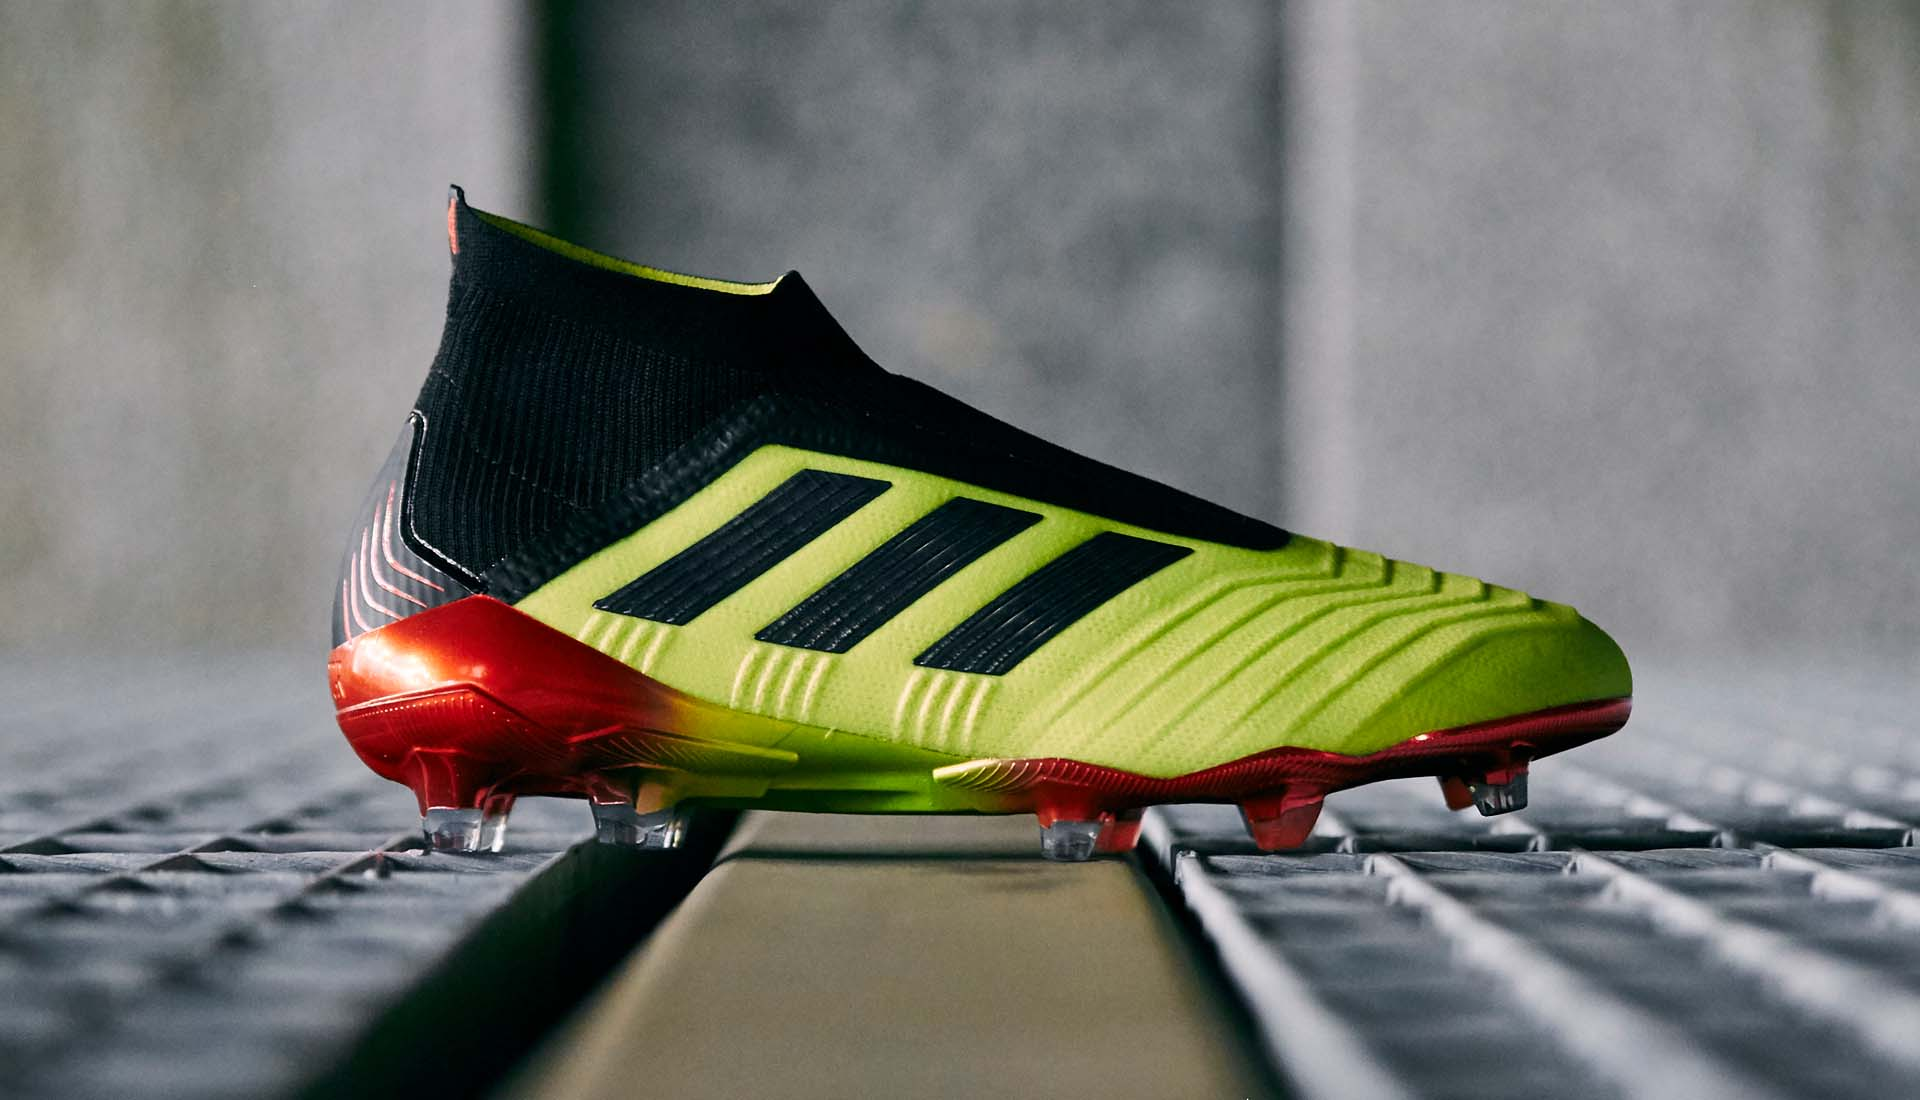 9-adidas-predator-energy-mode-world-cup